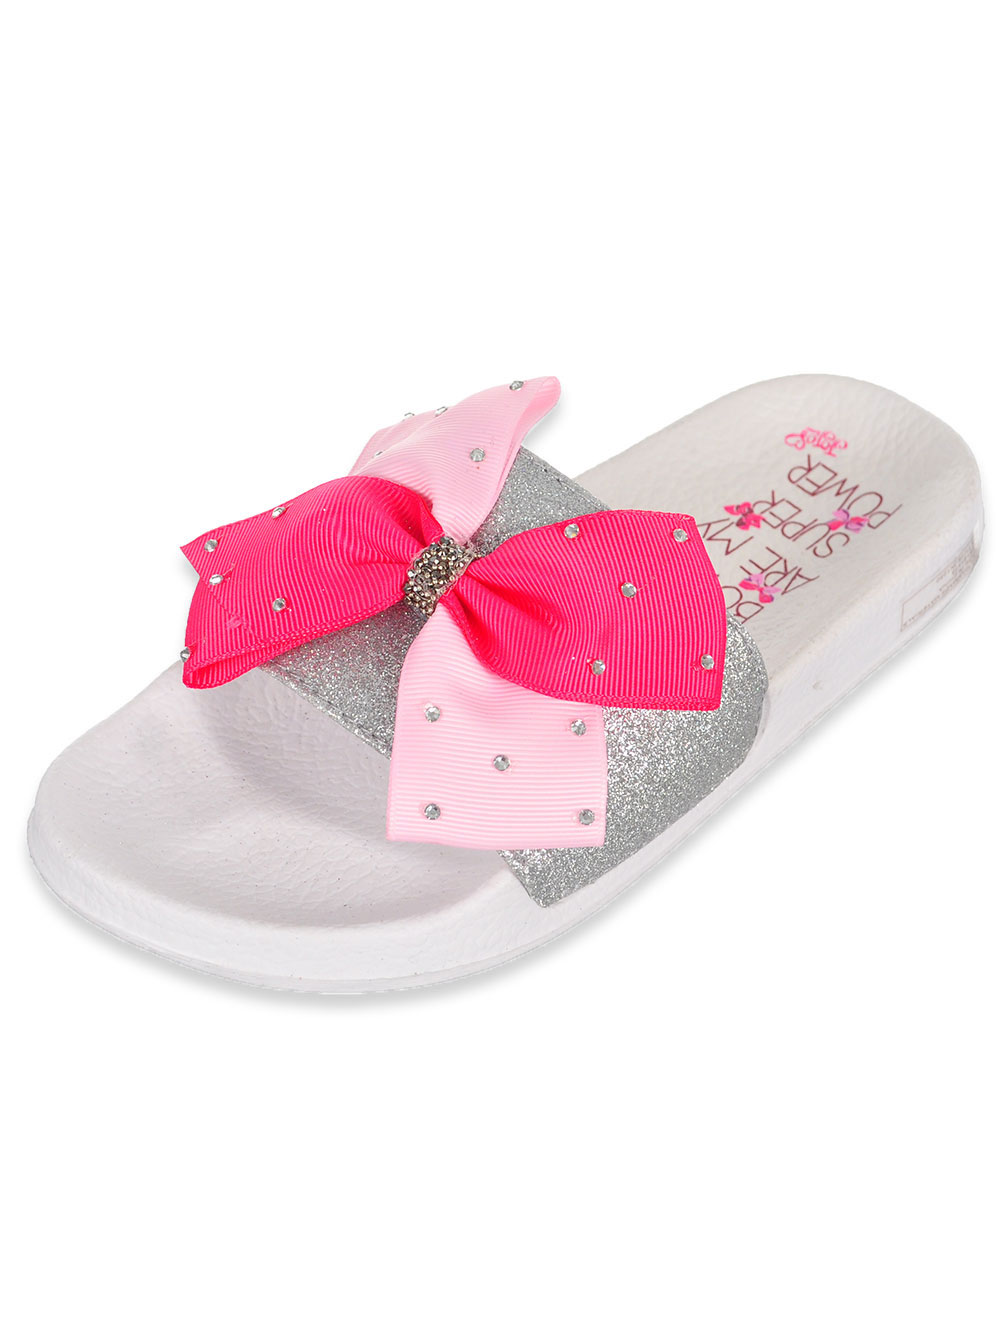 fd4ba9b3c0a9 Jojo Siwa Girls  Slide Sandals (Sizes 13 – 5)